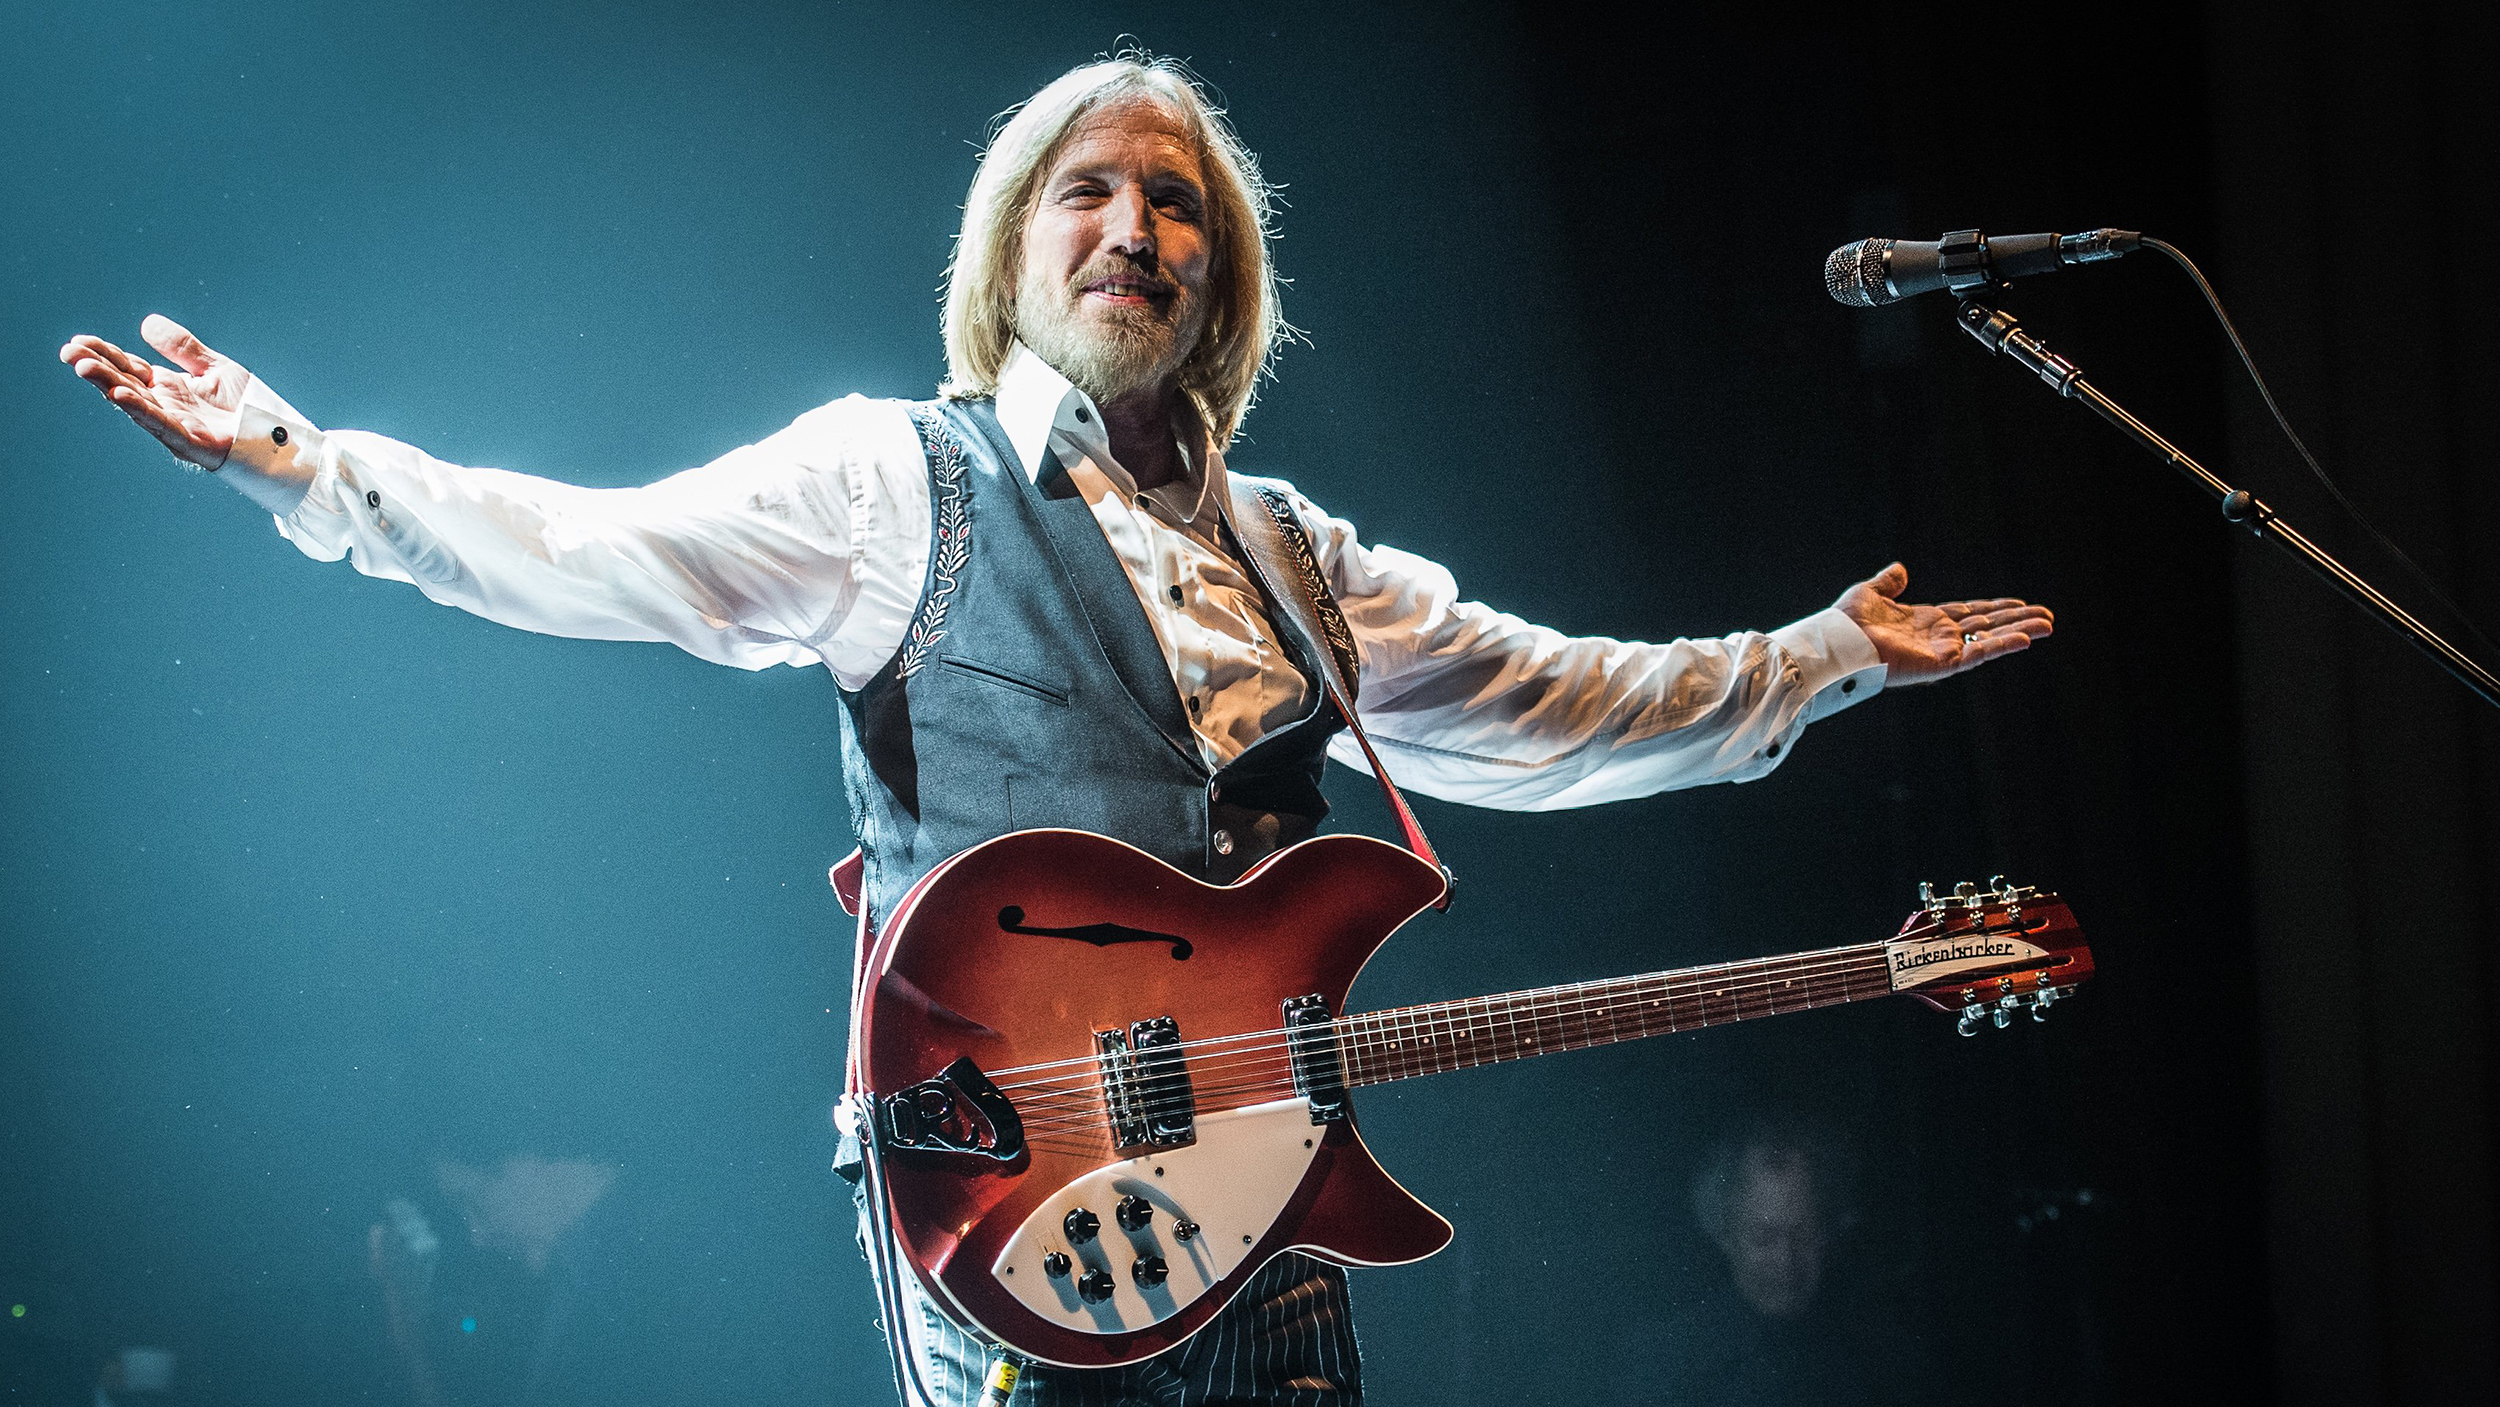 Tom Petty live Nazionalità Stati Uniti Genere Rock Heartland rock Rock alternativo Blues rock Hard rock Periodo di attività musicale 1969 2017